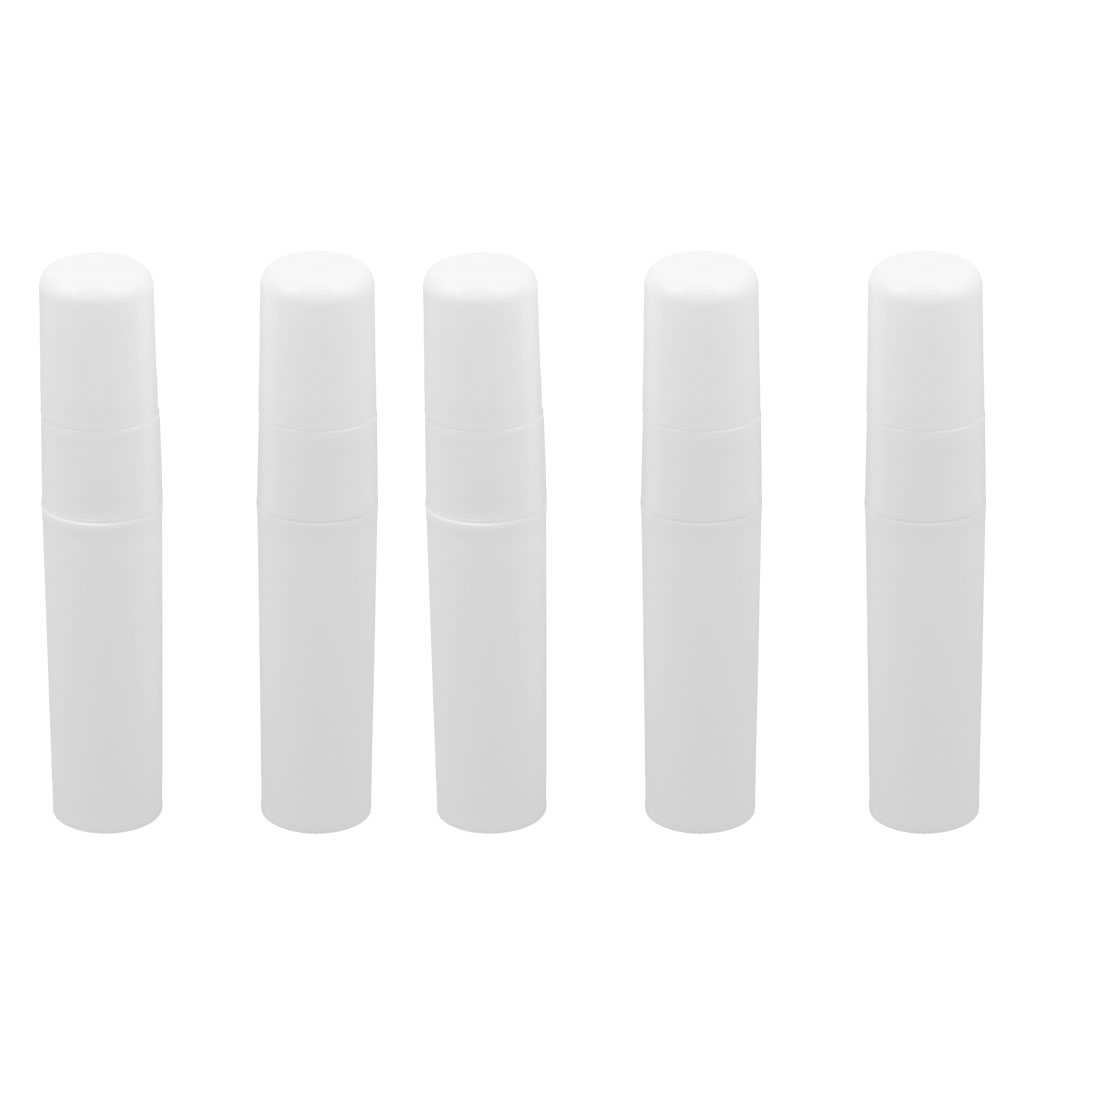 5pcs White Plastic Cosmetic Makeup Liquid Pump Spray Bottle Perfume Container Holder 5ml for Women